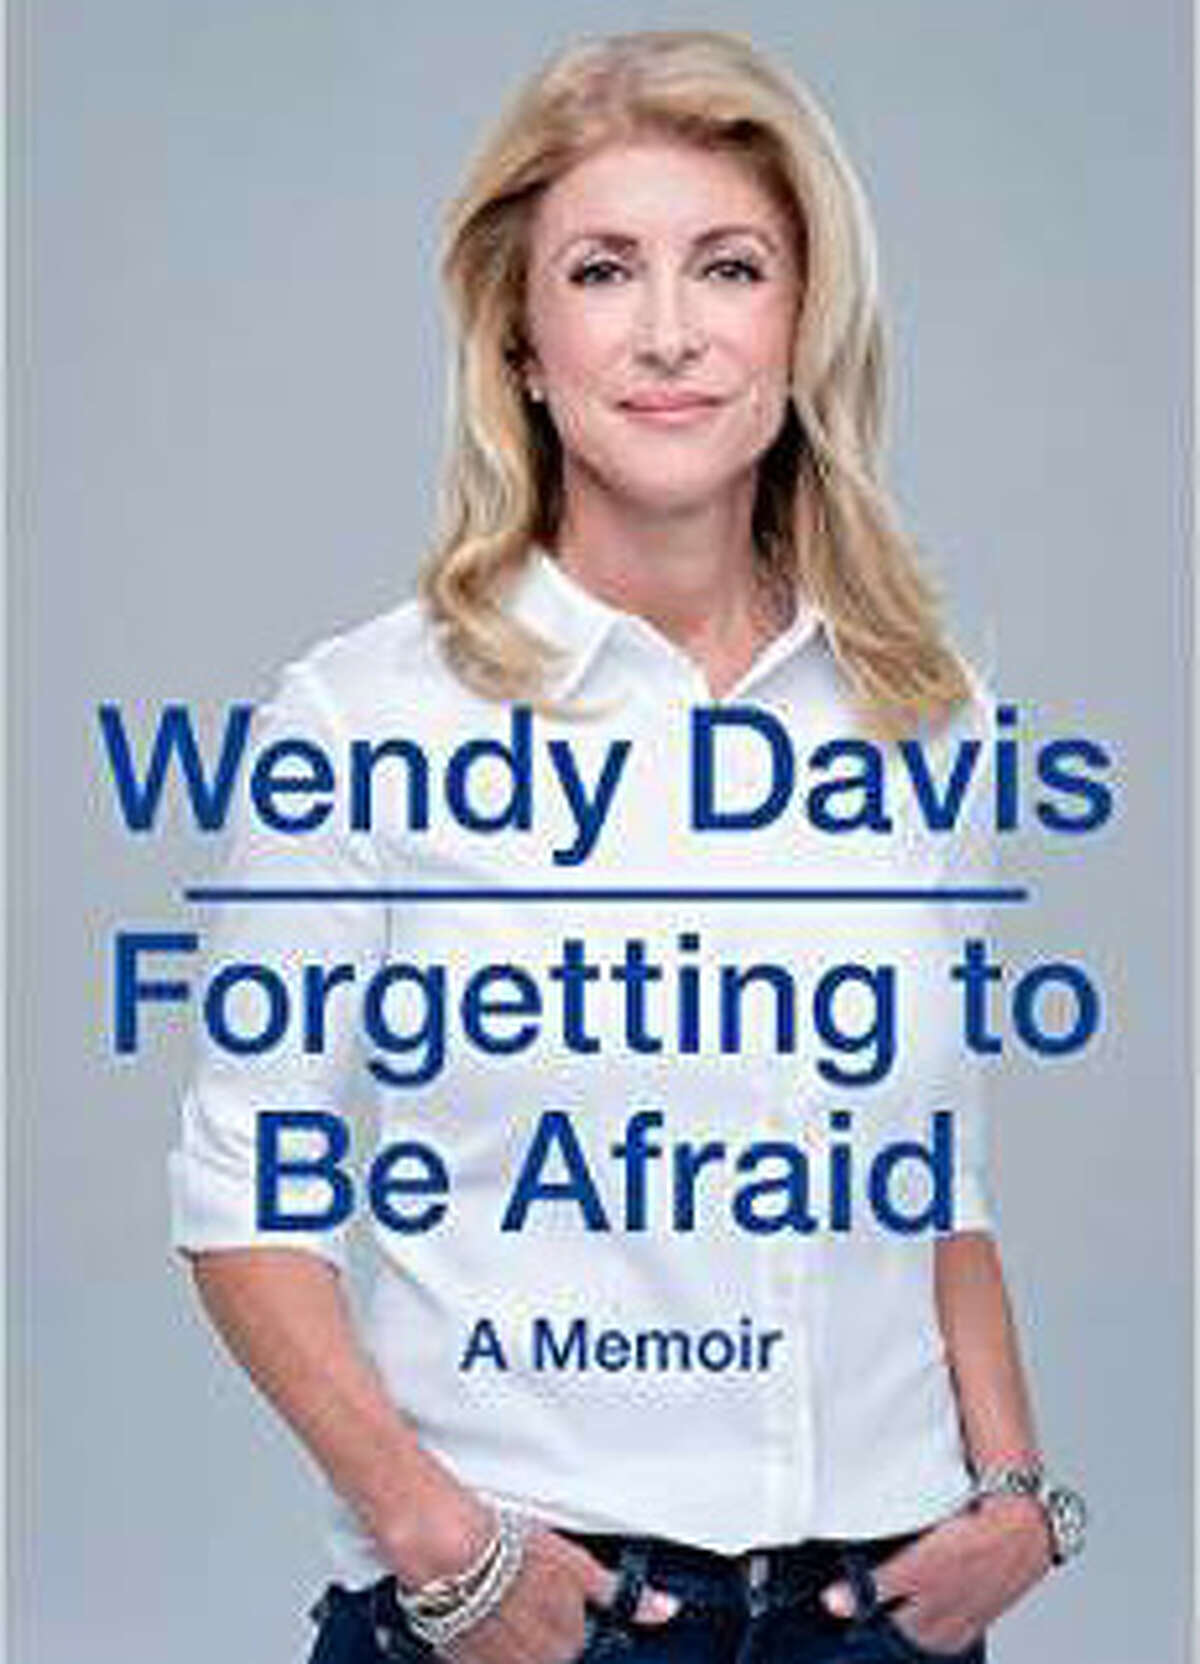 Democratic gubernatorial candidate Wendy Davis will promote her book,